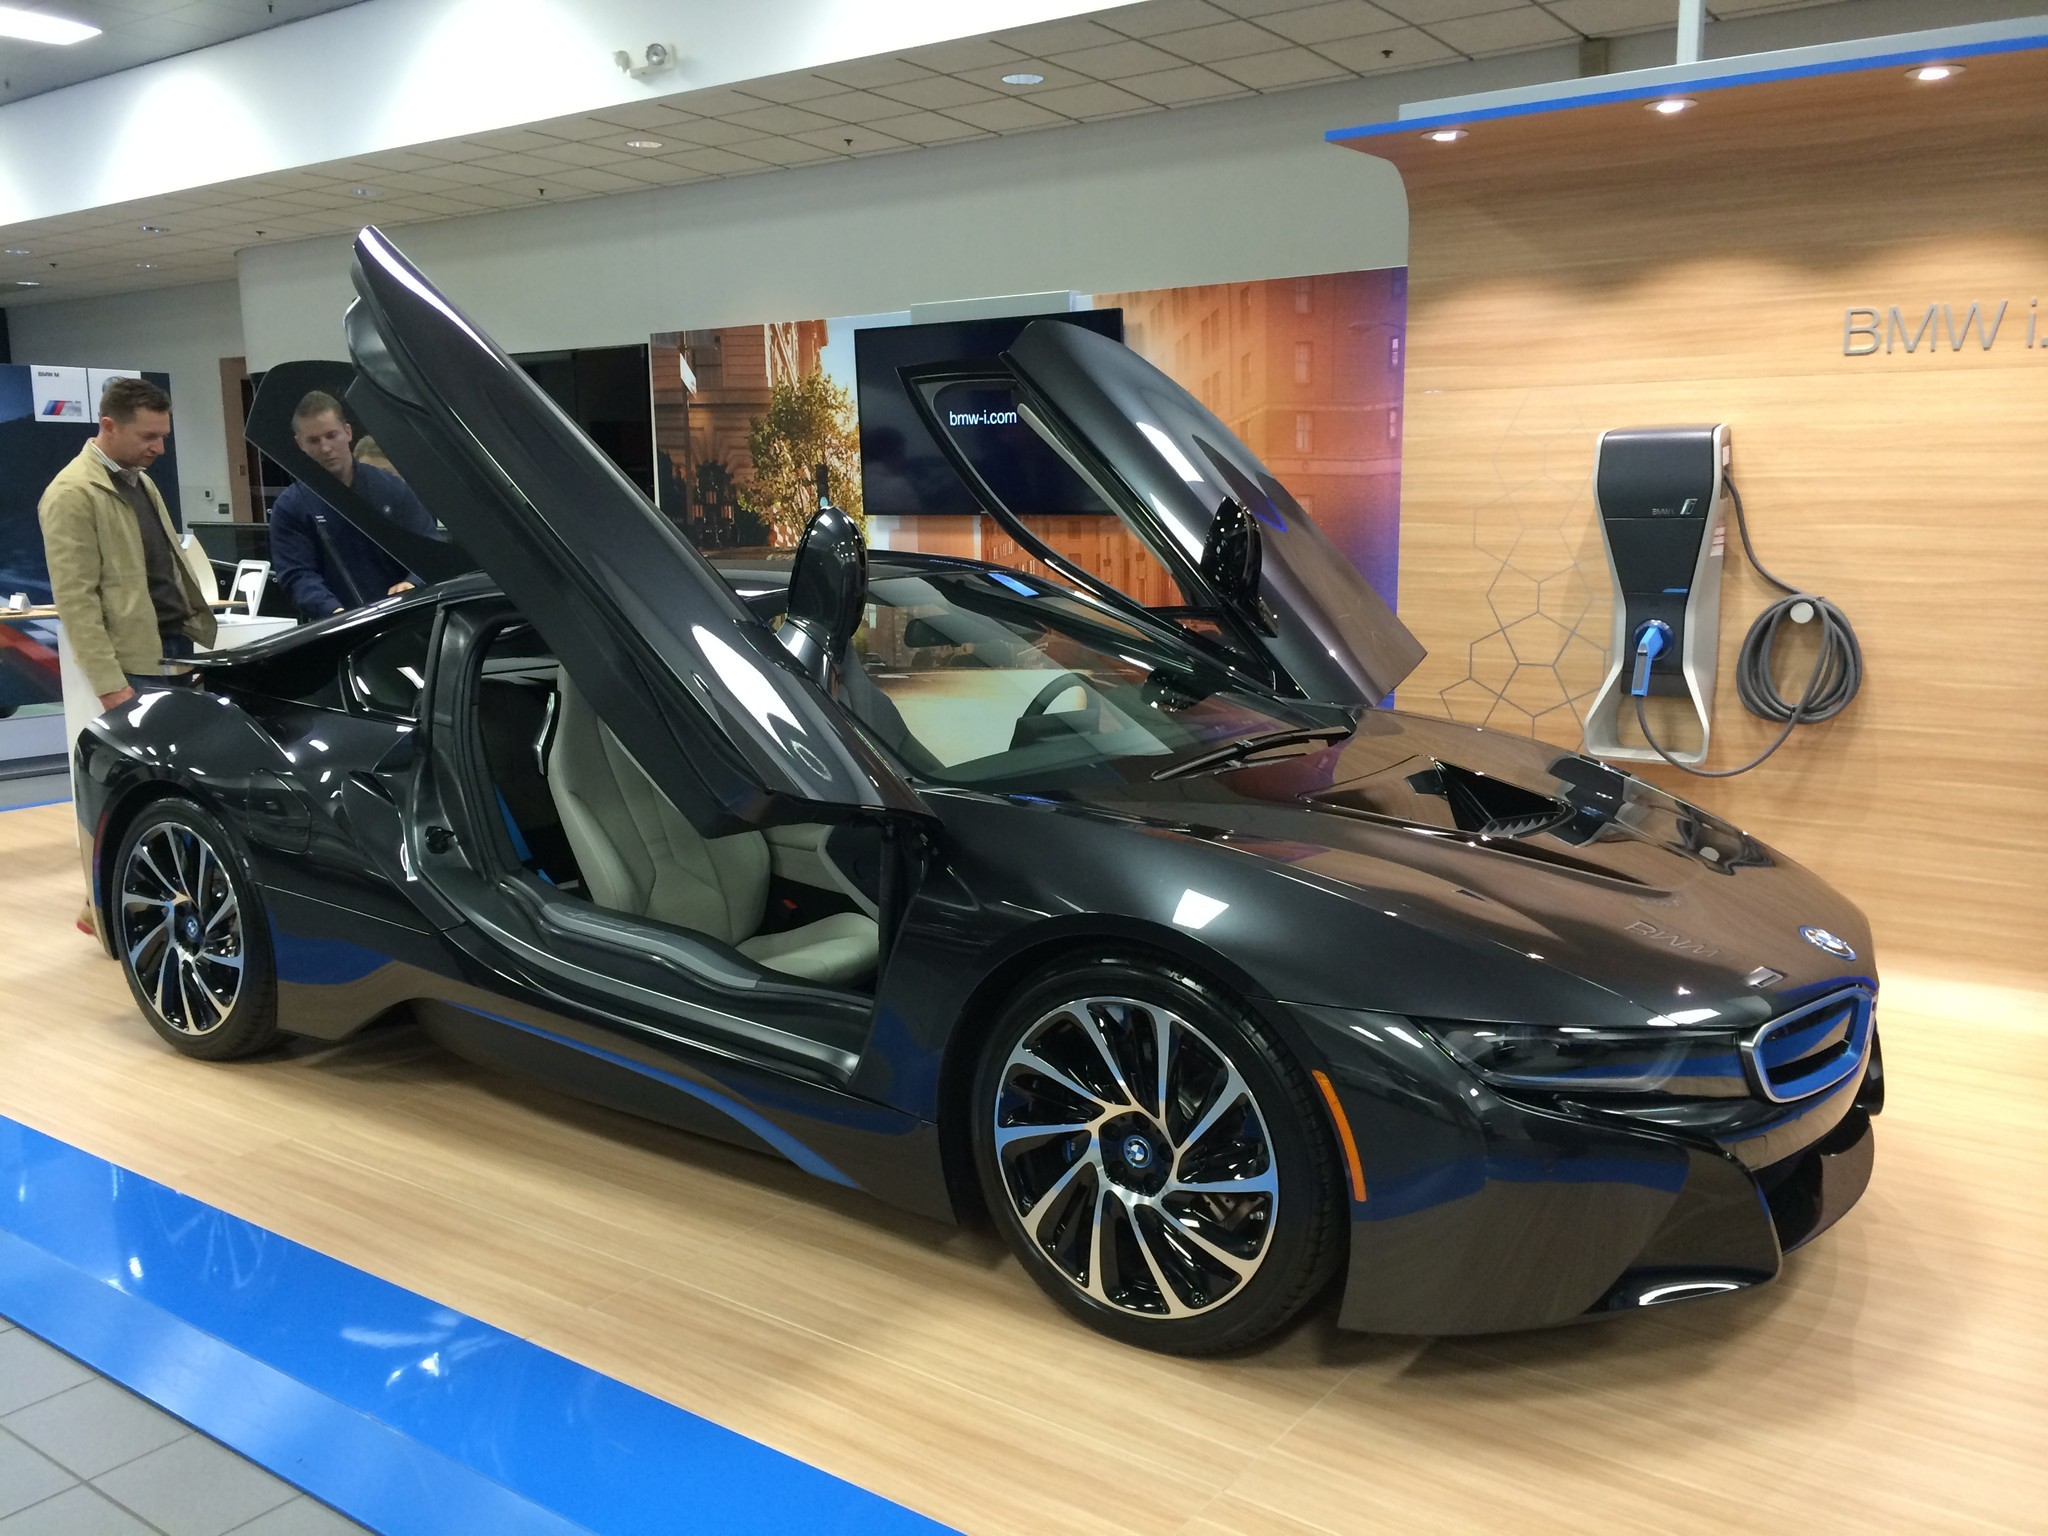 Rare Bmw I8 Sports Car Auctioned By New Country Nets 30 000 For